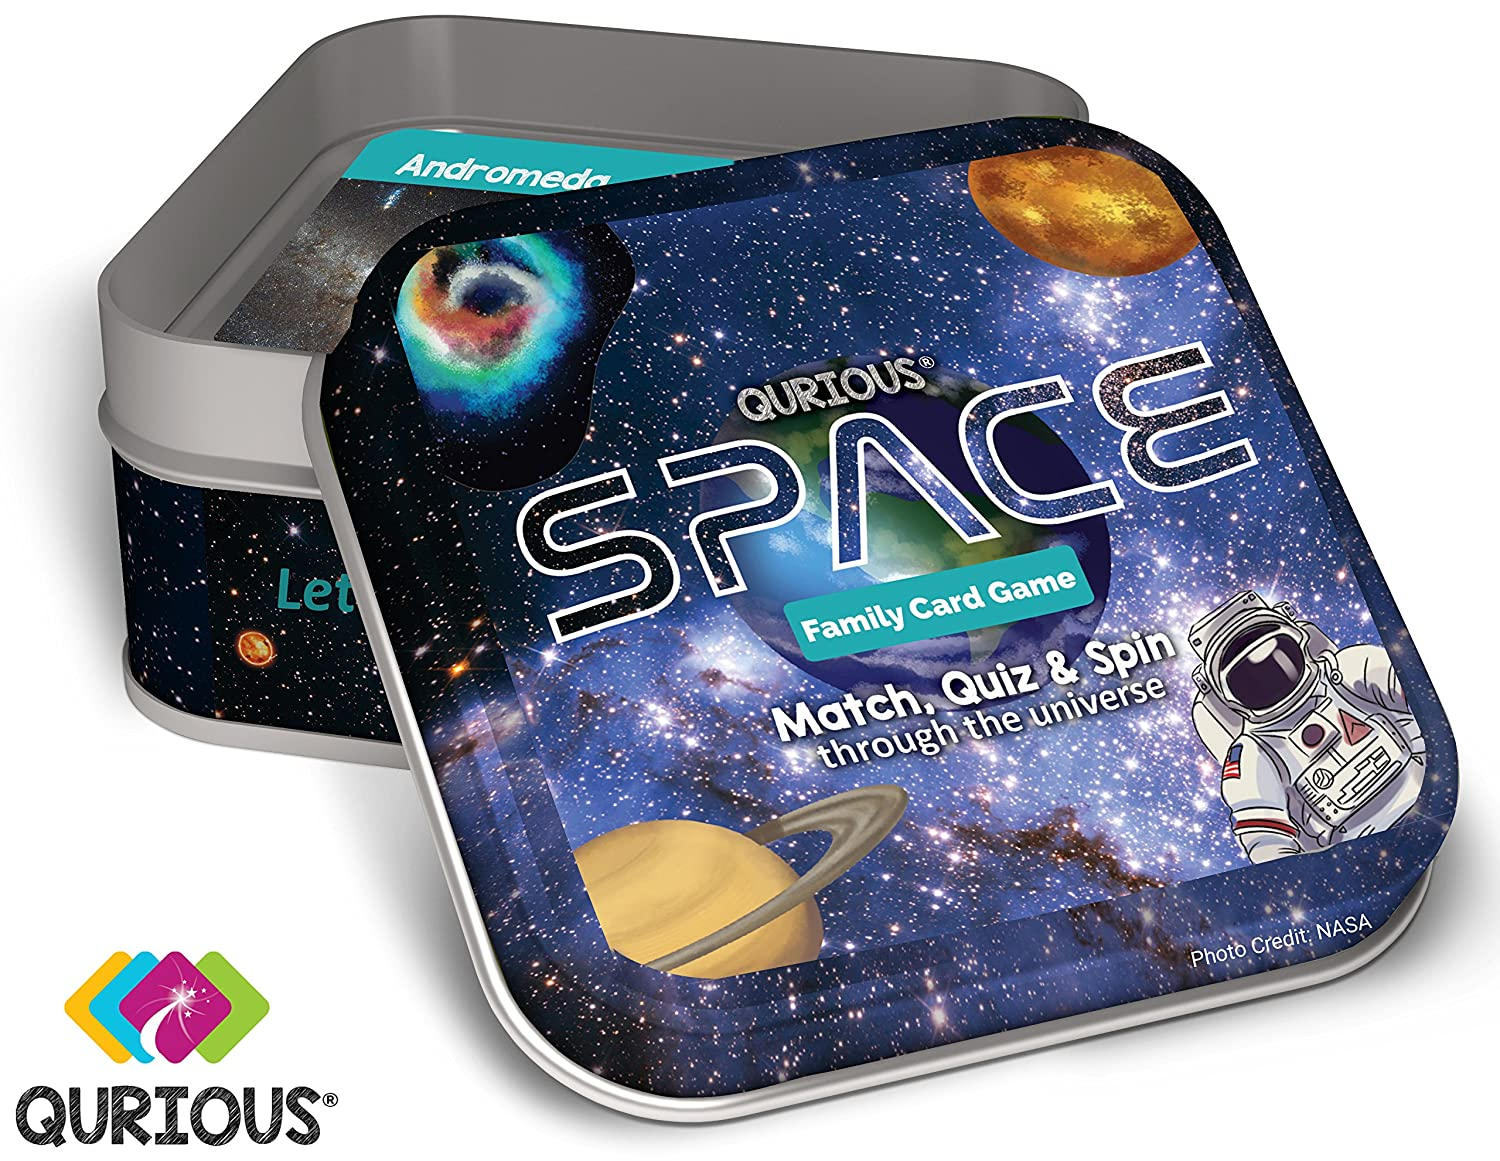 Space Family Card Game - Explore, Match, Quiz & Spin through the Universe